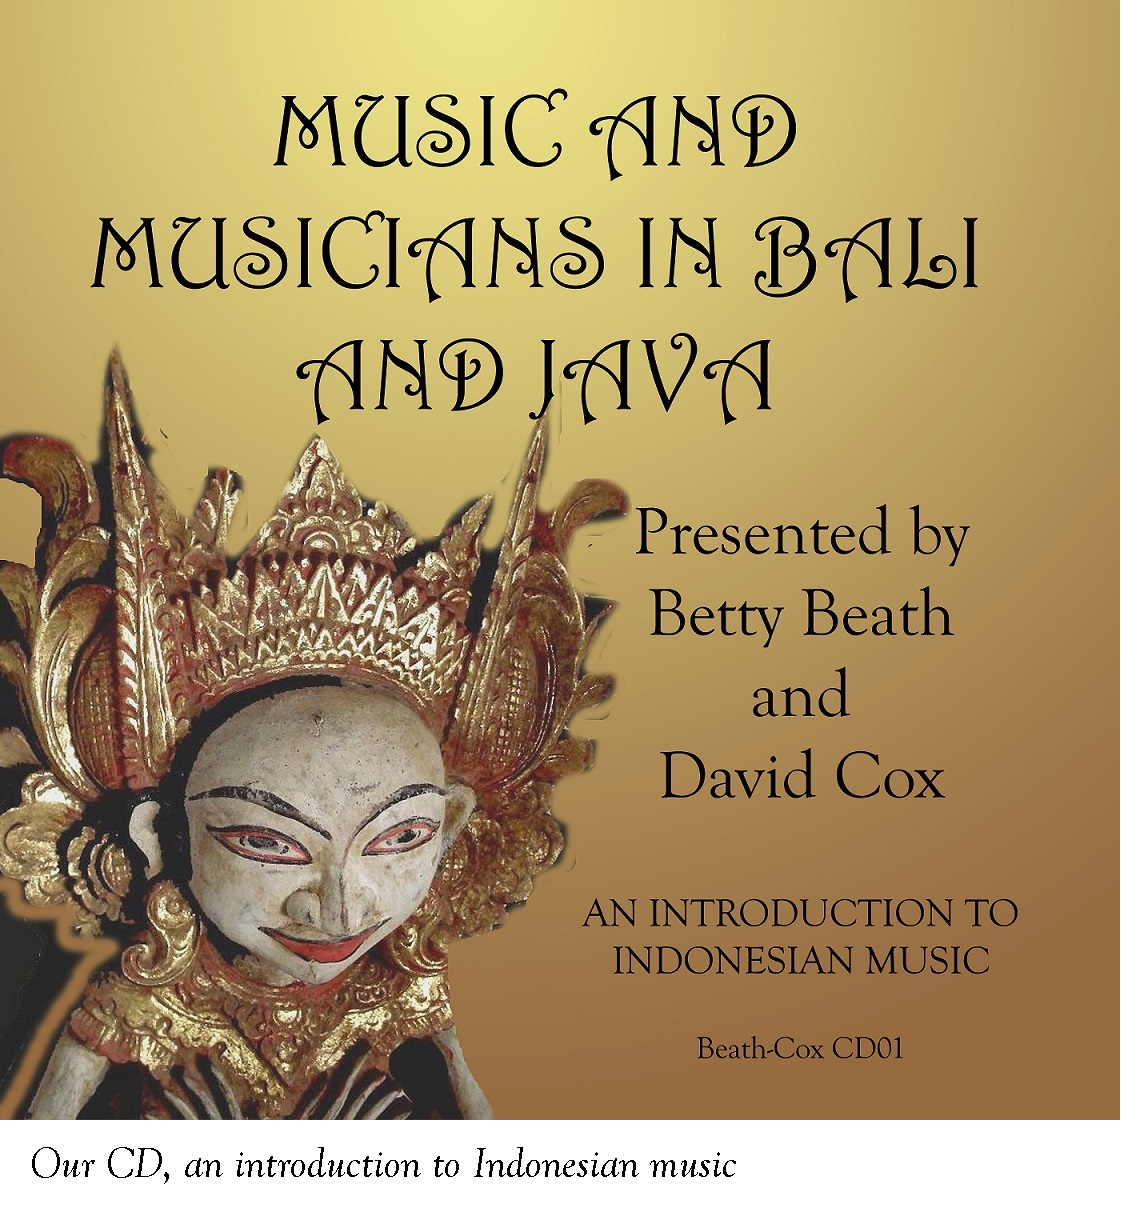 Compact Discintroduction to Indonesian music